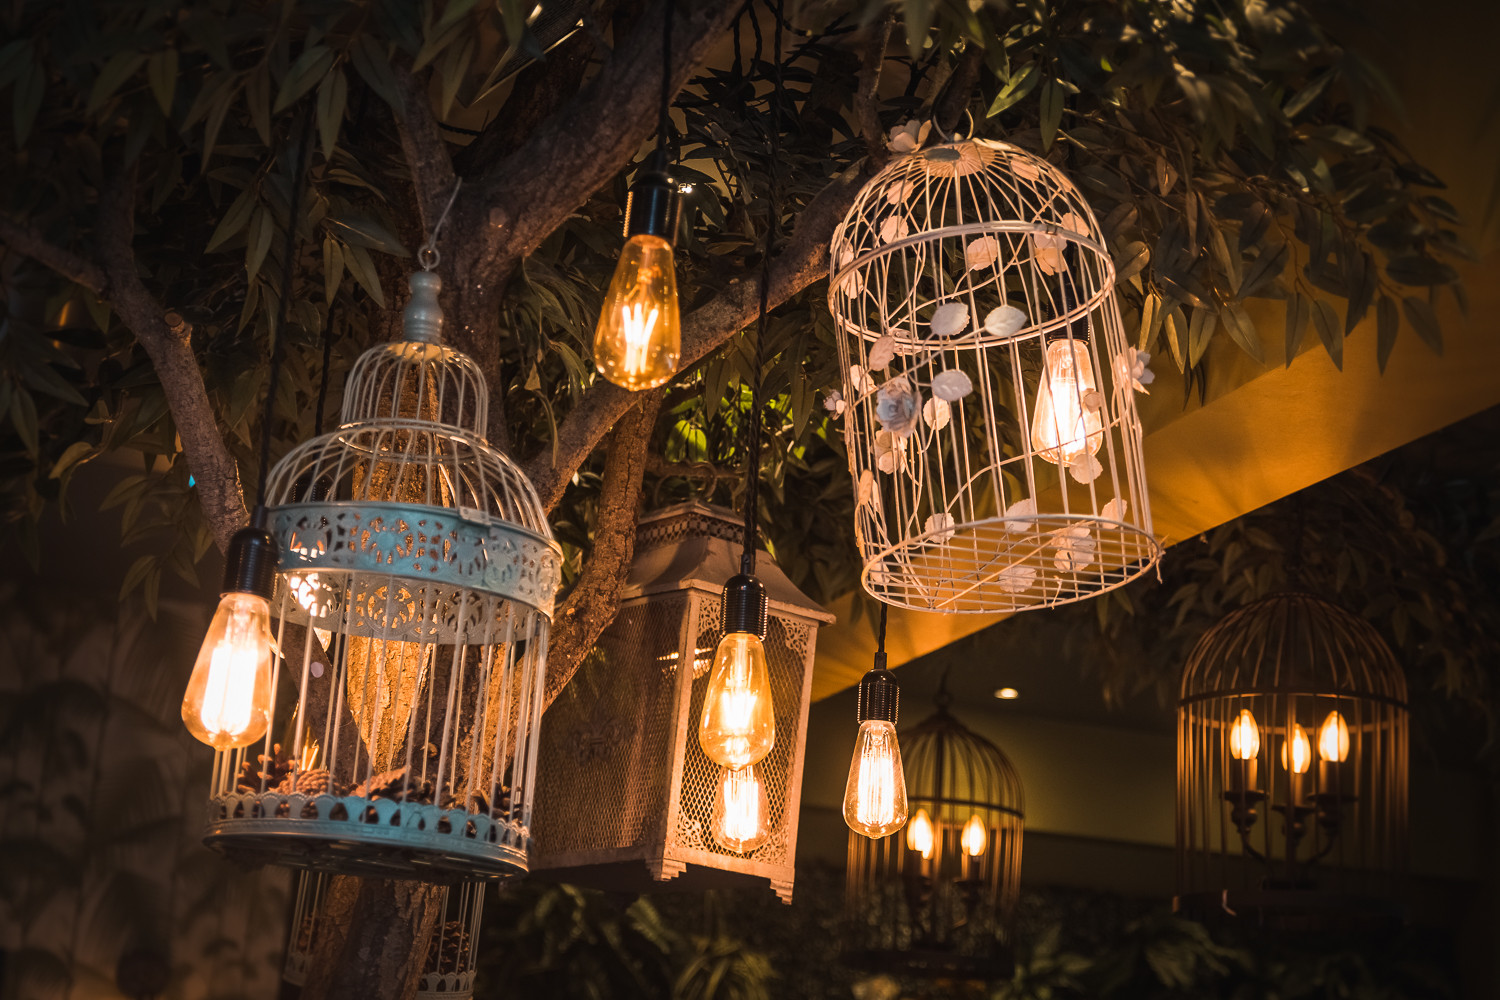 Decorations at a wedding reception in The Potting Shed, Beverley.